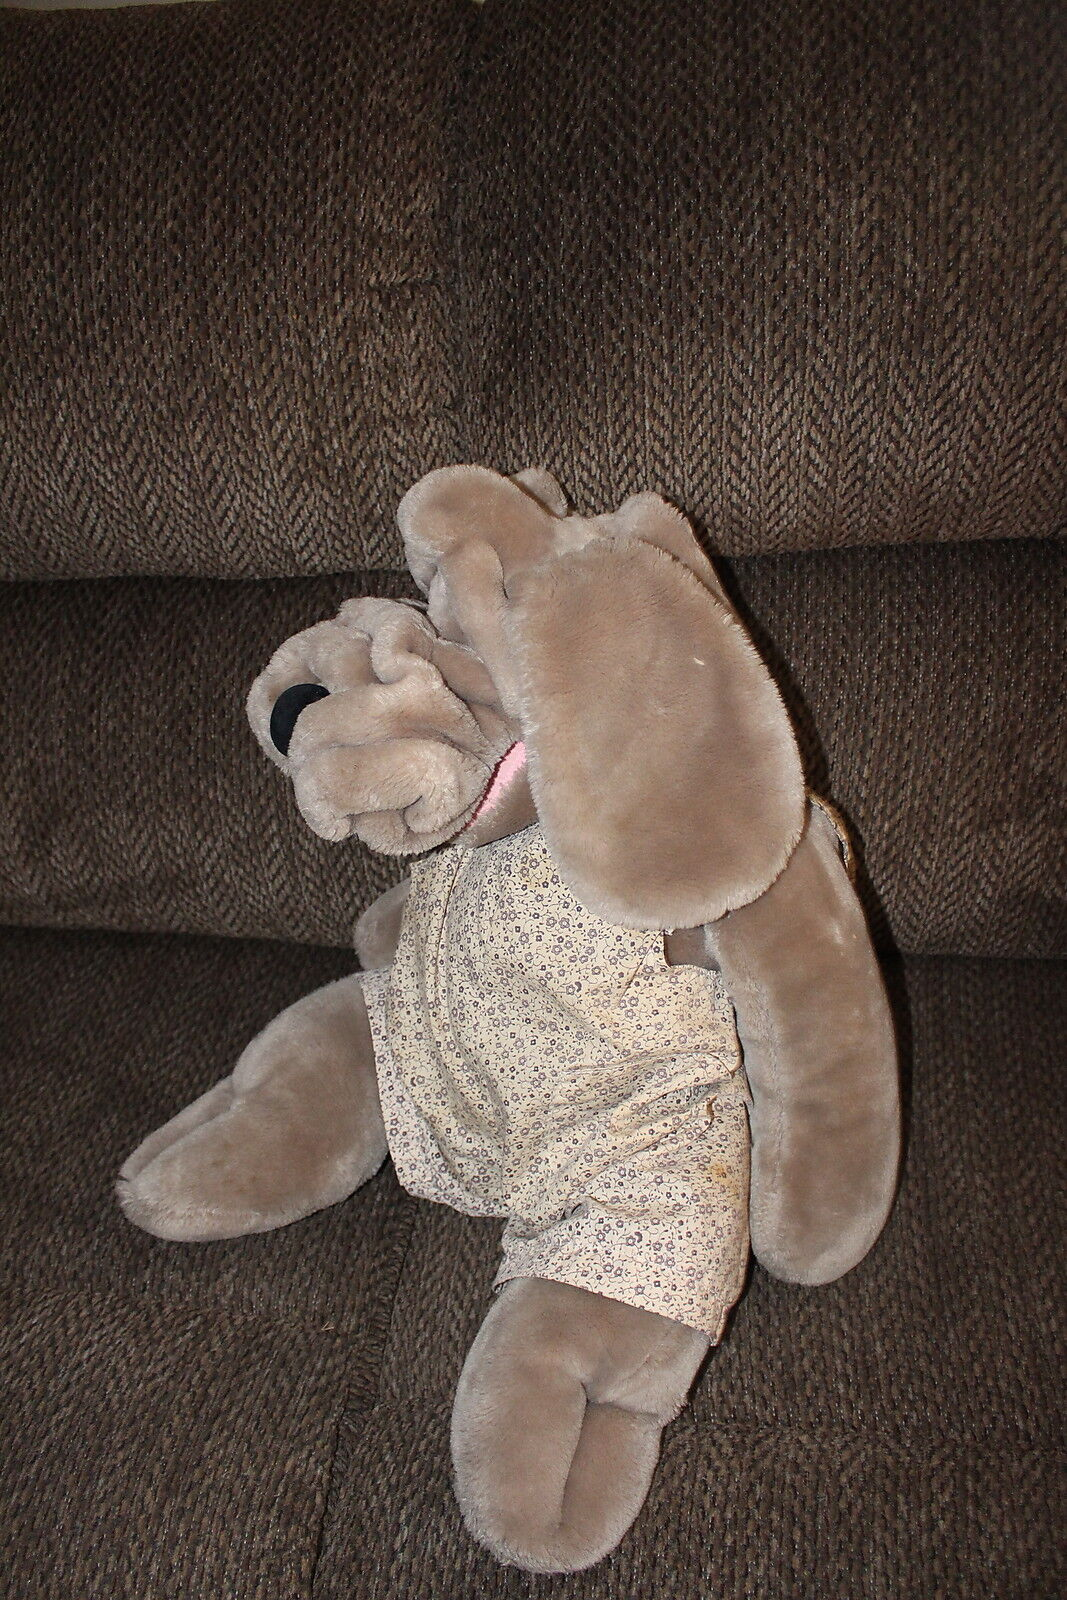 Wrinkles Ganz Bros. Large Stuffed Dog with clothes 29    long Hand Puppet Korea c1eae4